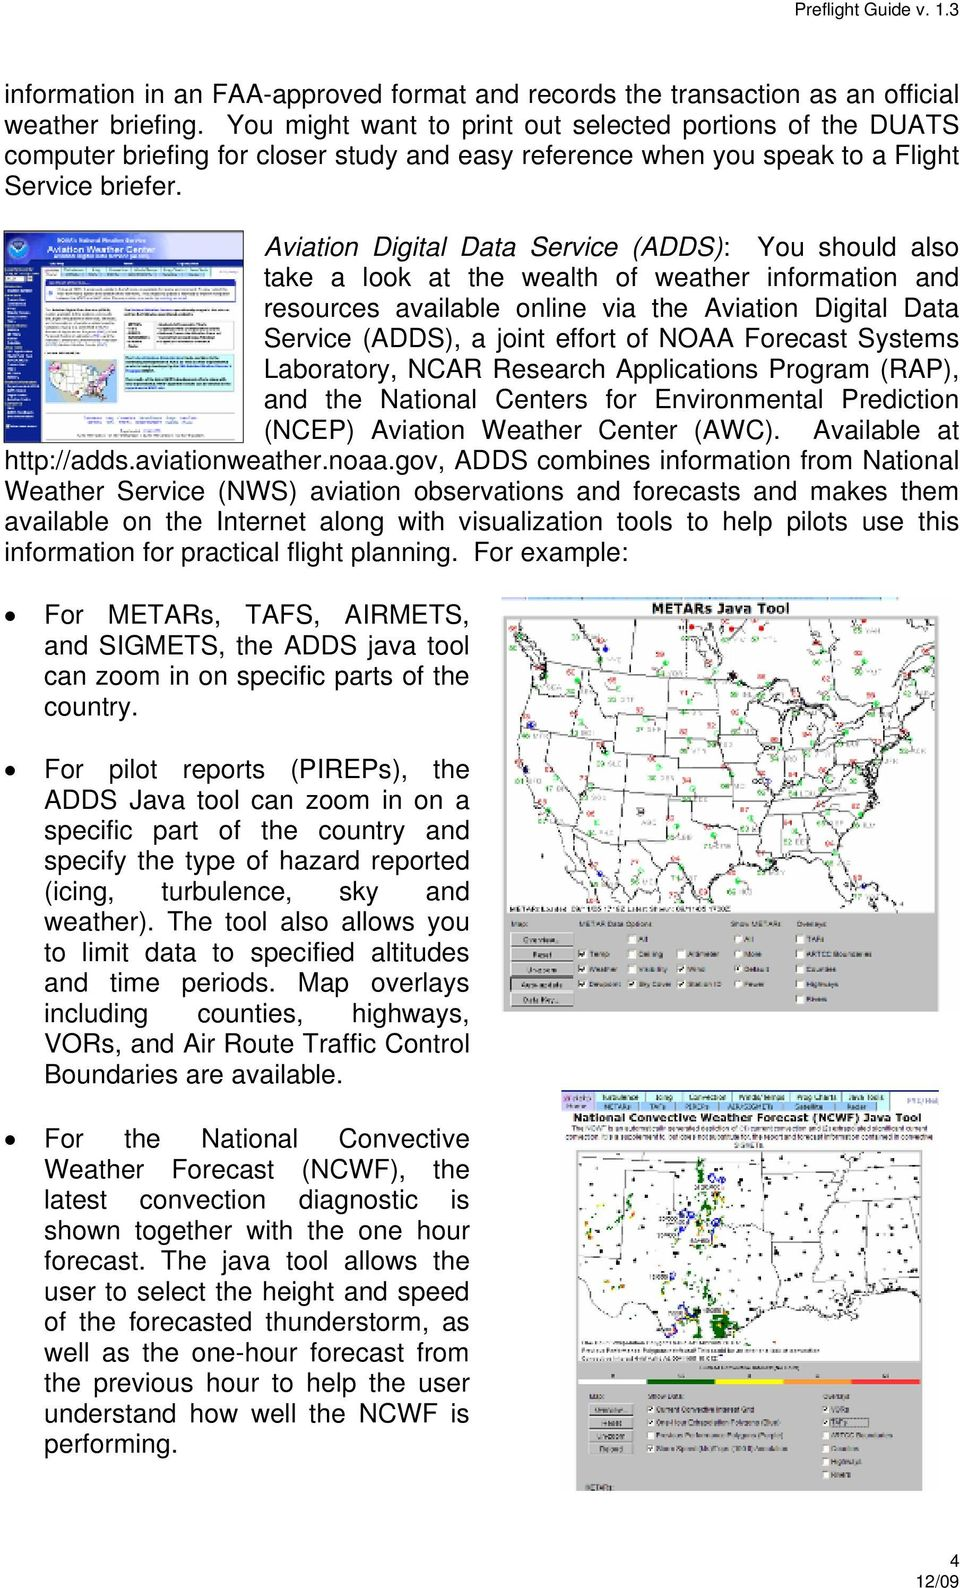 Aviation Digital Data Service (ADDS): You should also take a look at the wealth of weather information and resources available online via the Aviation Digital Data Service (ADDS), a joint effort of